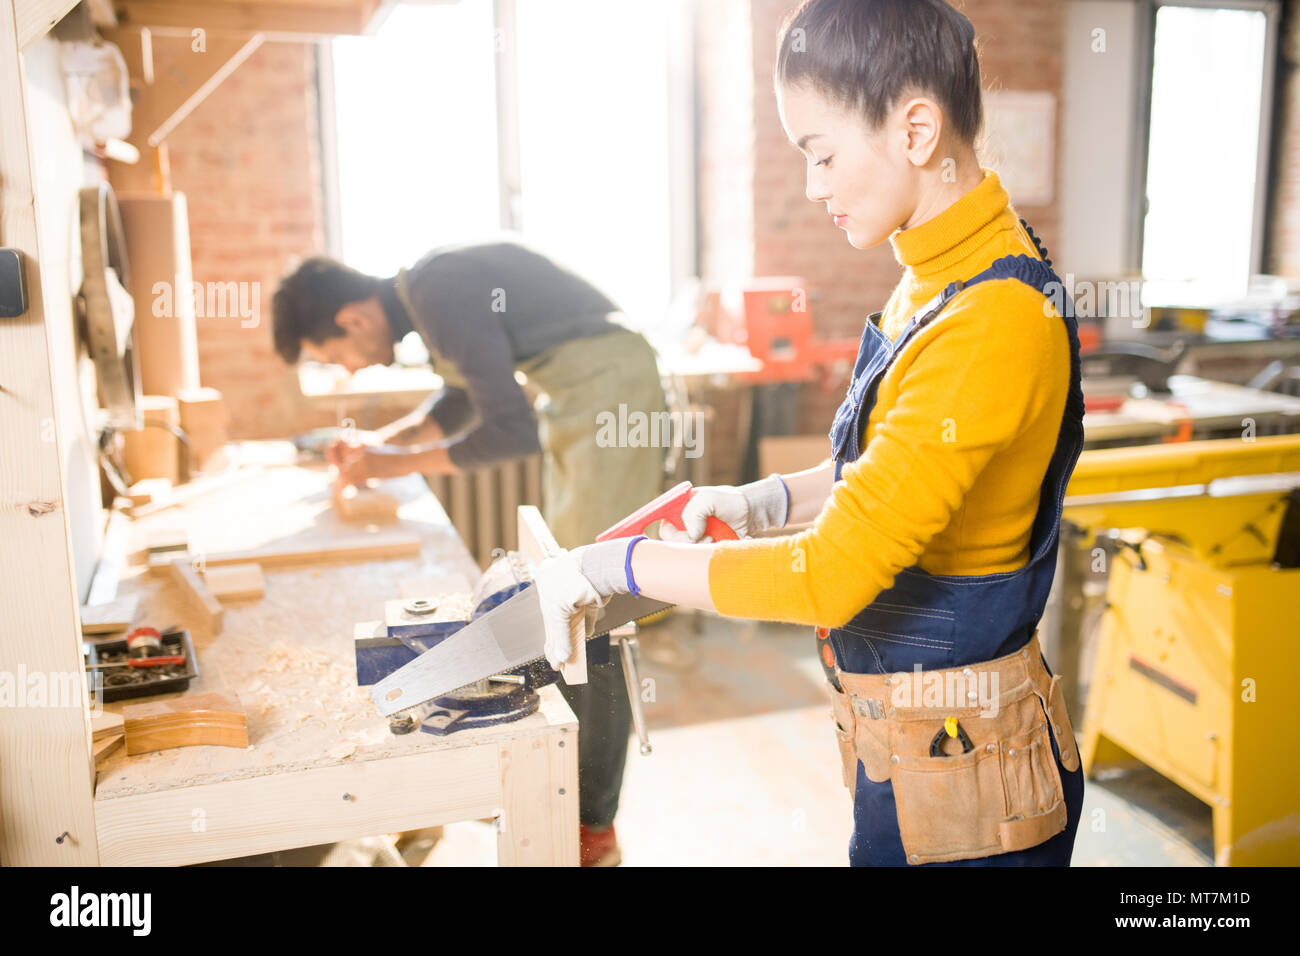 Carpenters Working in Joinery - Stock Image